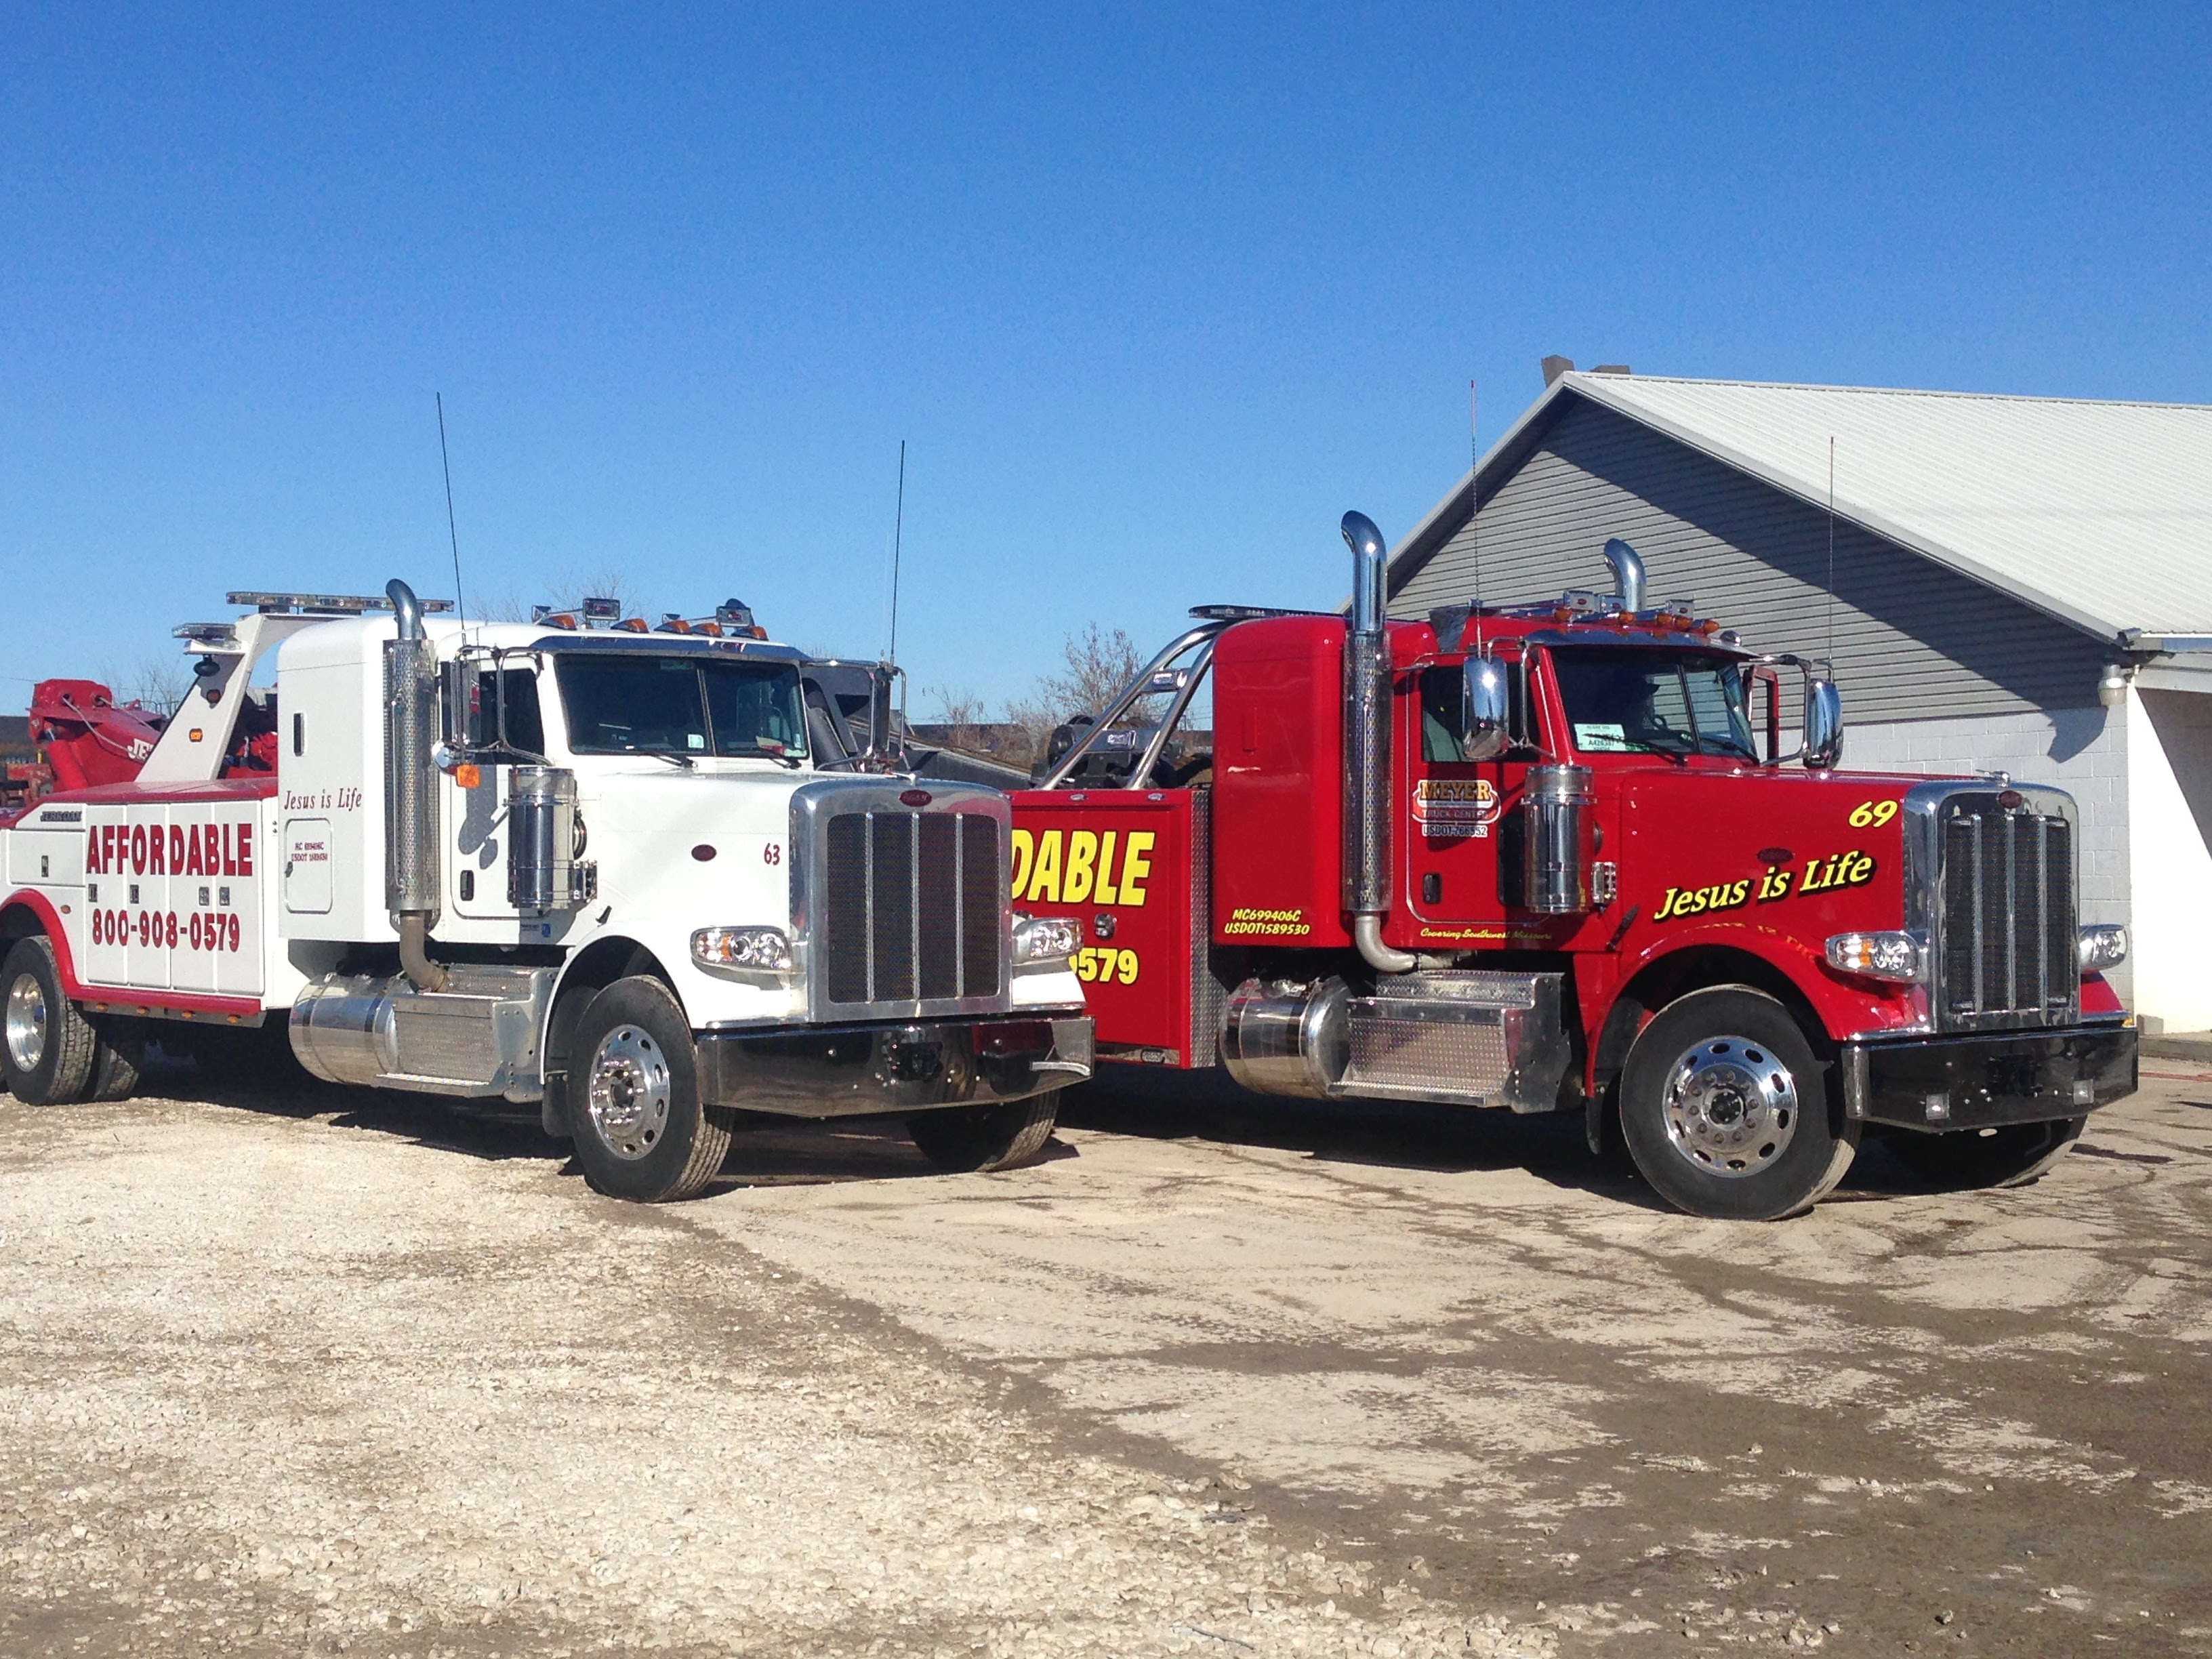 Affordable Towing image 4